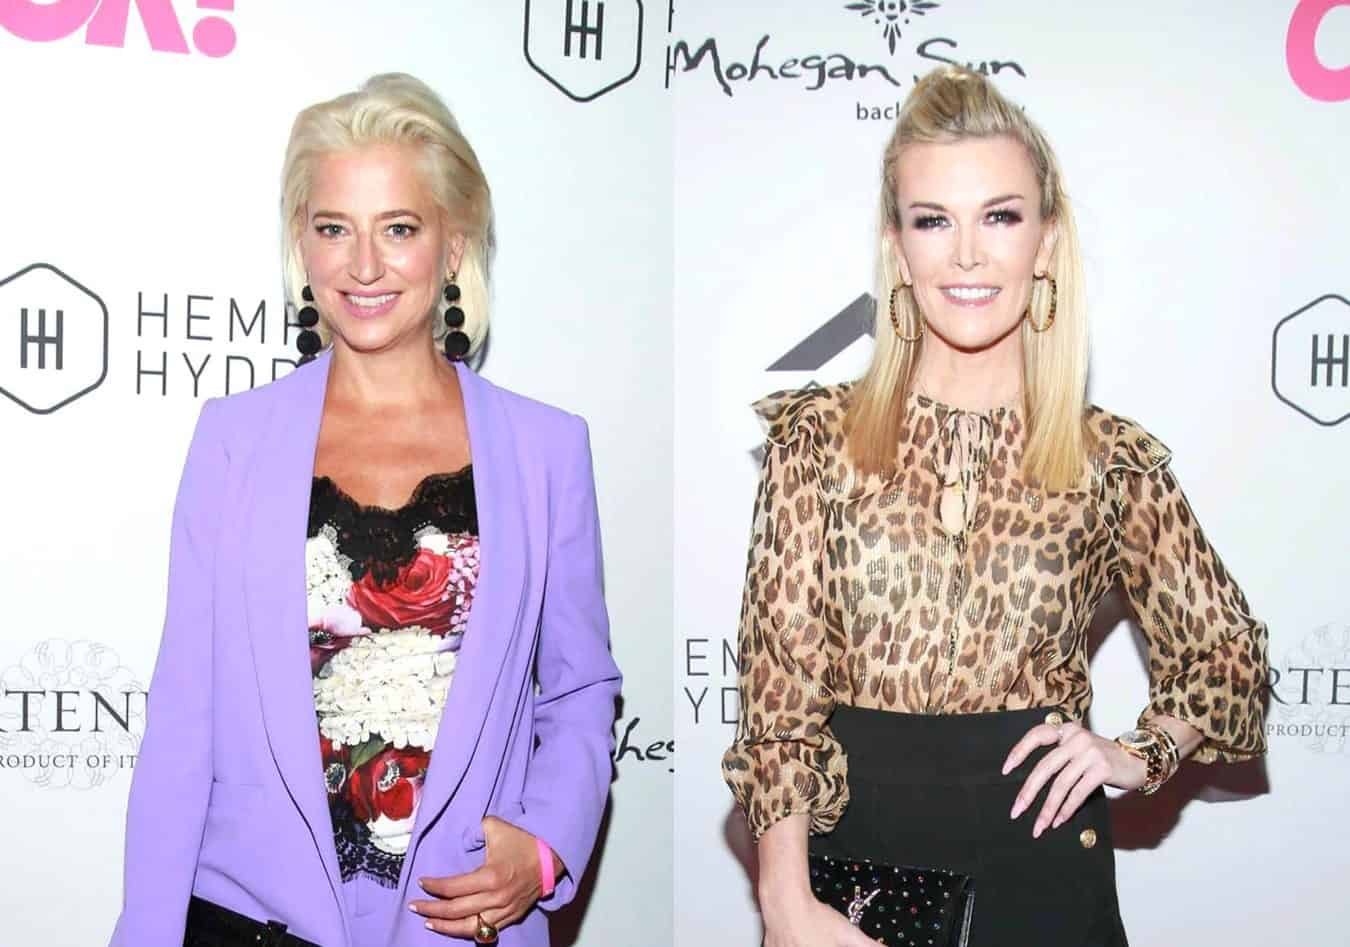 RHONY Star Dorinda Medley Taunts Tinsley Mortimer After She Brags About Her Degree, Suggests She's Never Owned Anything After Leah Weighs In